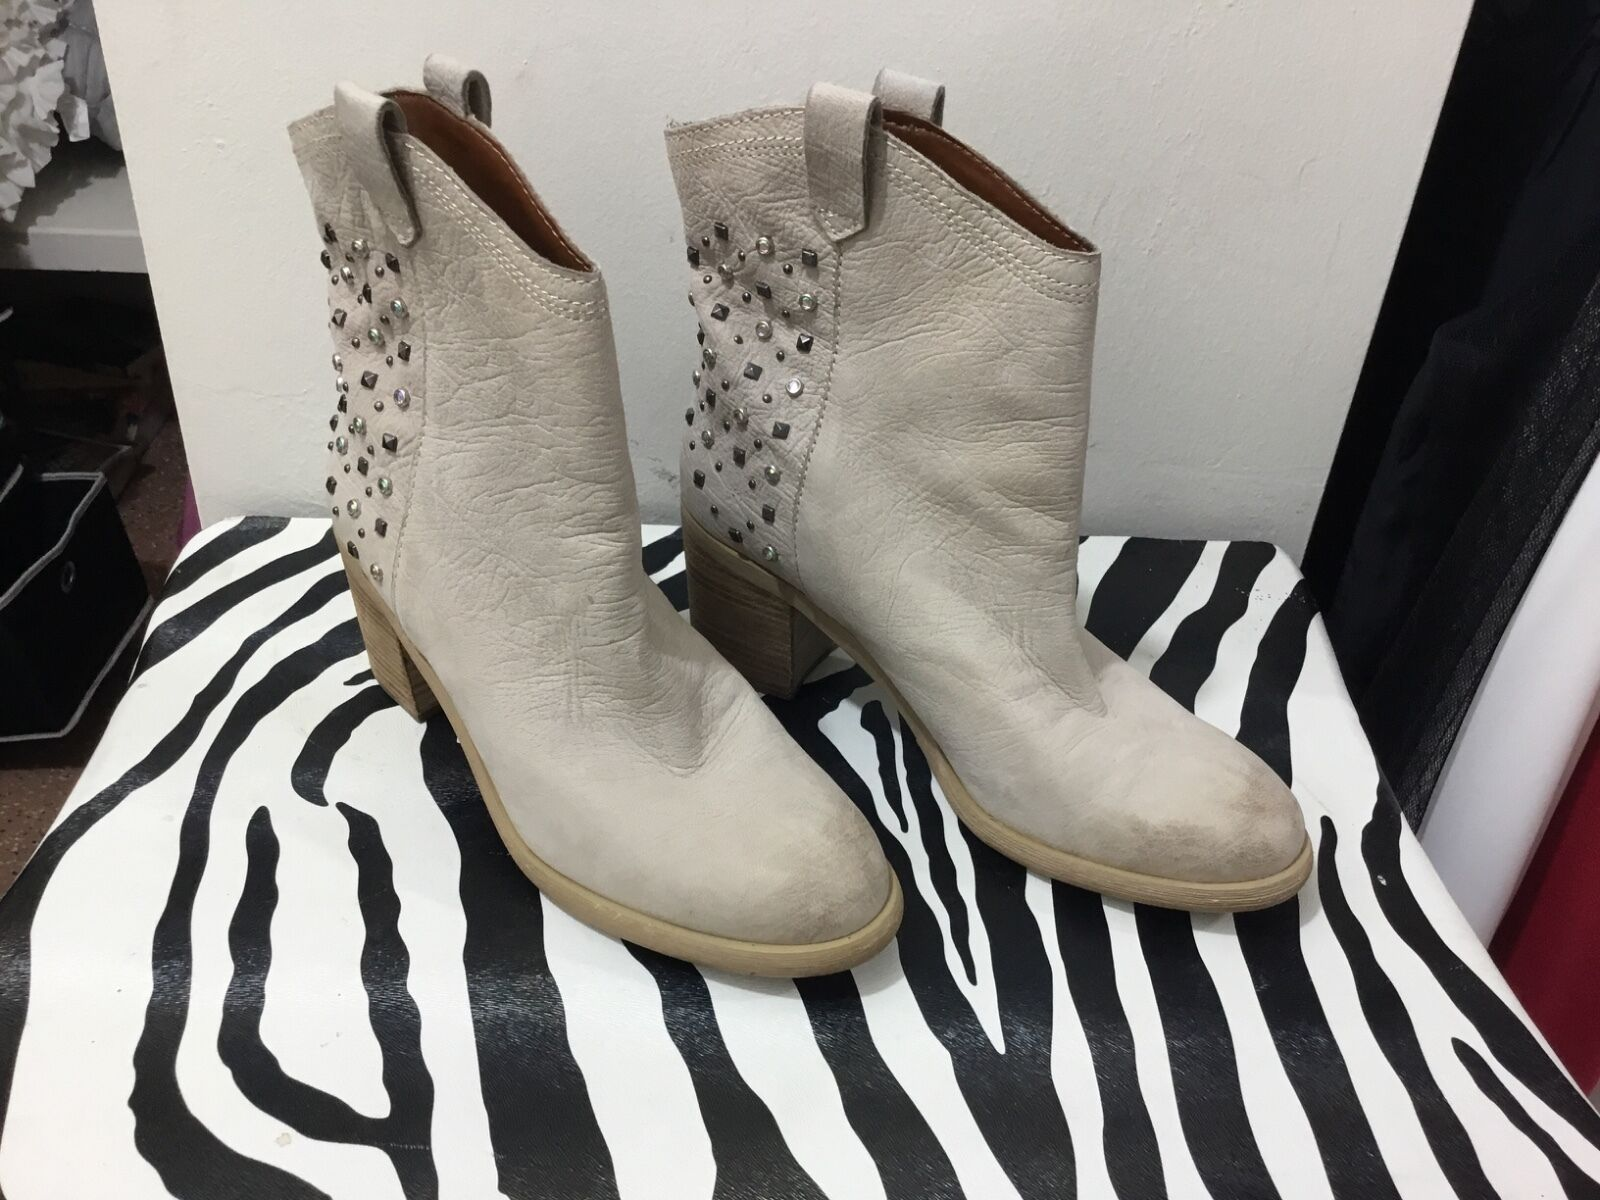 Boutique 9 ladies studded leather size 7.5 ankle boots